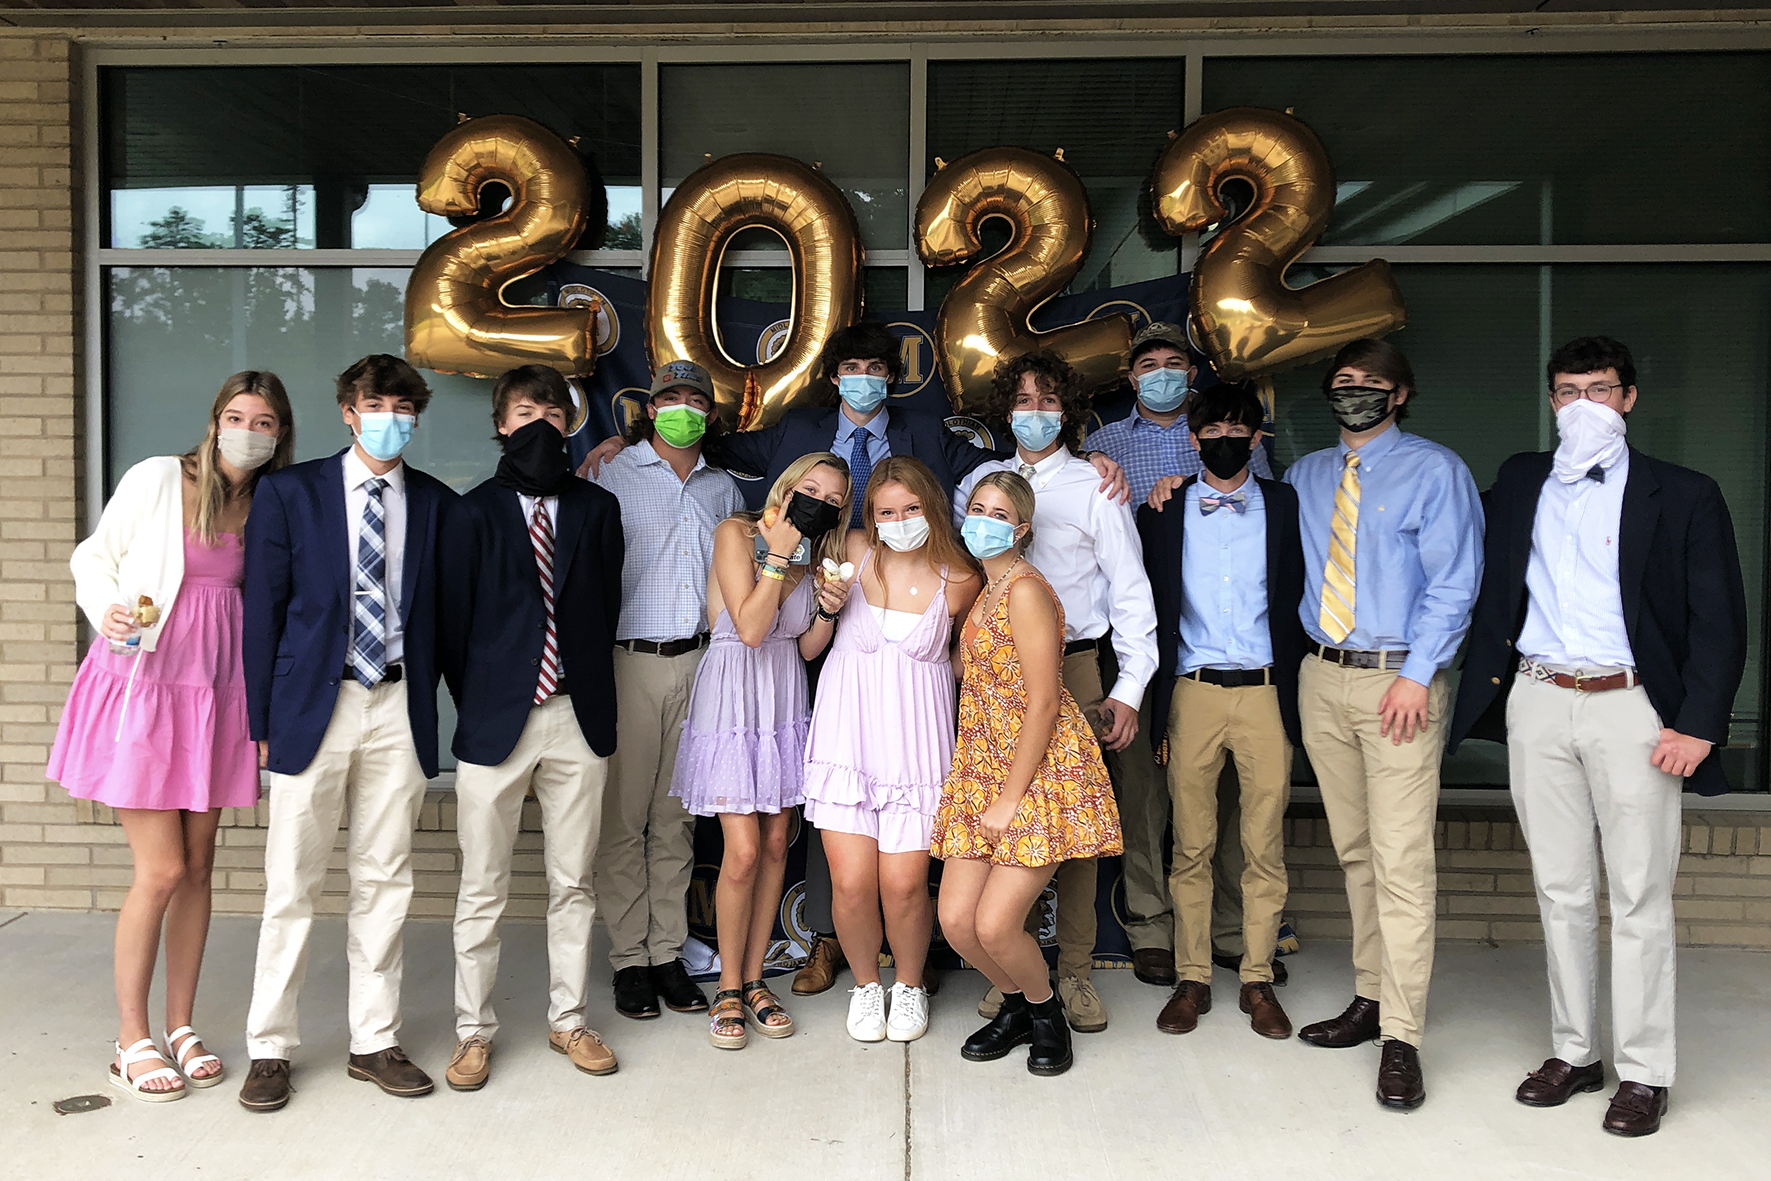 Group of students pose under a 2022 balloon.